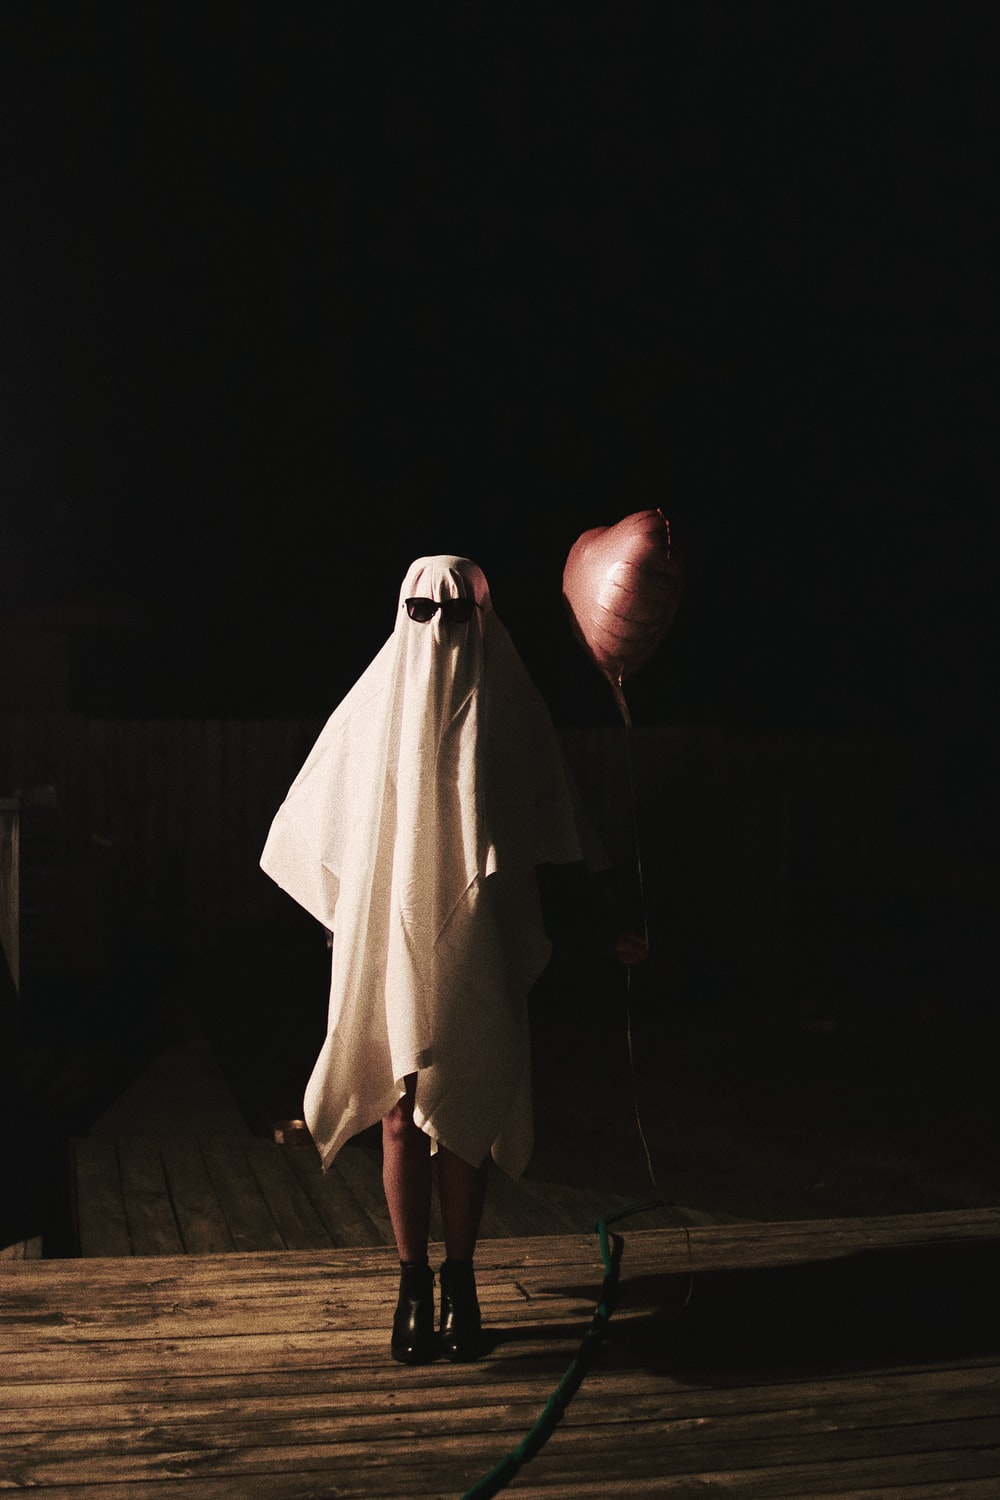 person in white robe standing on brown wooden floor